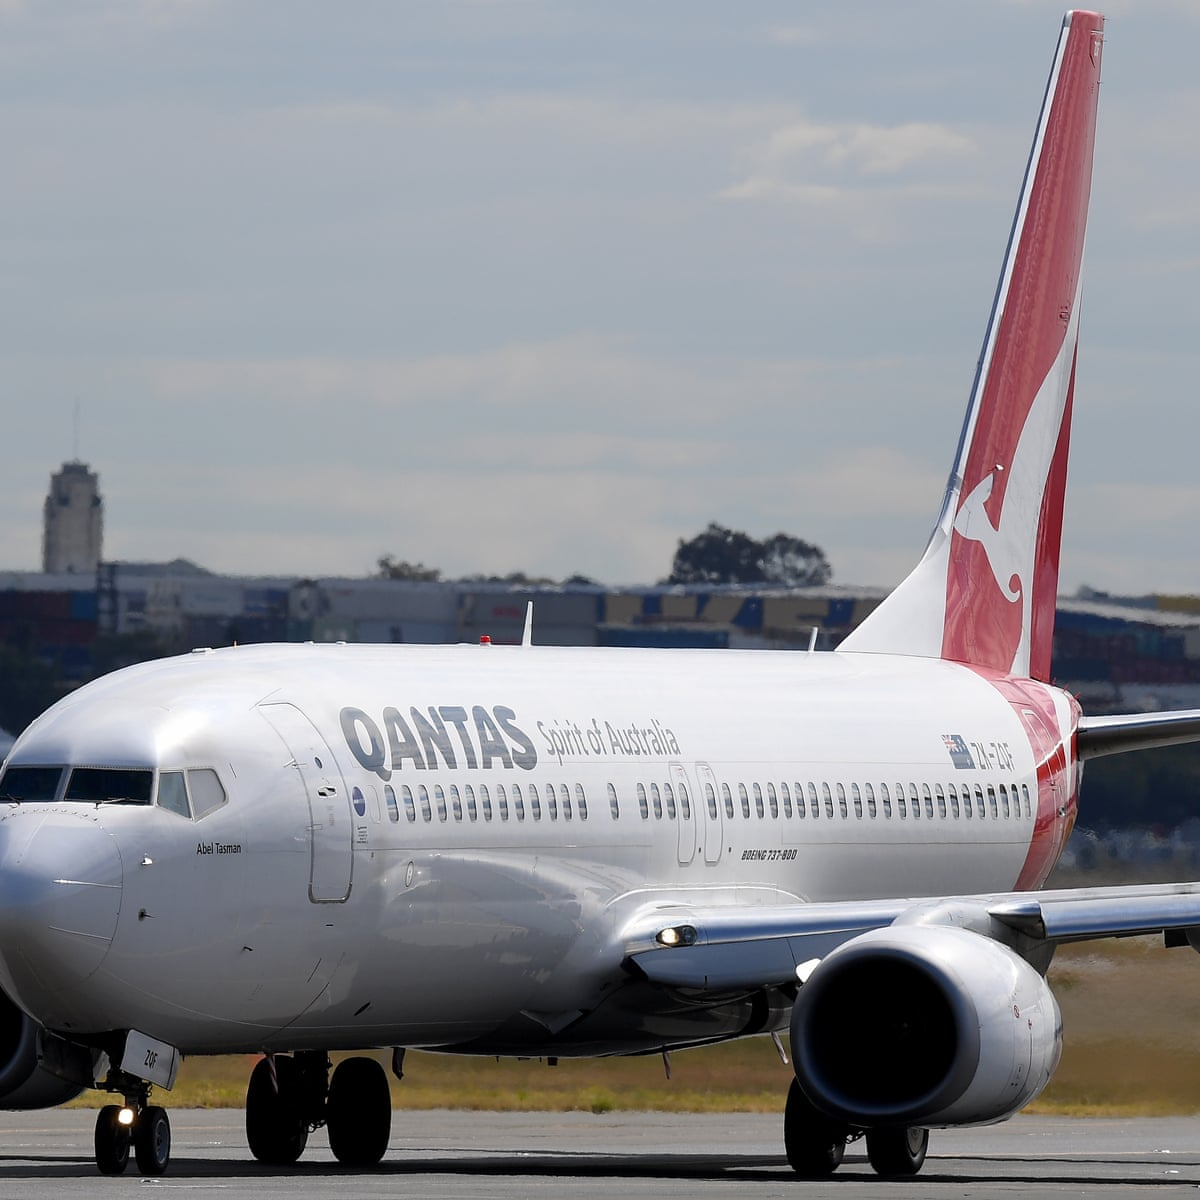 Boeing 737 Cracks How Common Are They And Should You Be Worried Business The Guardian